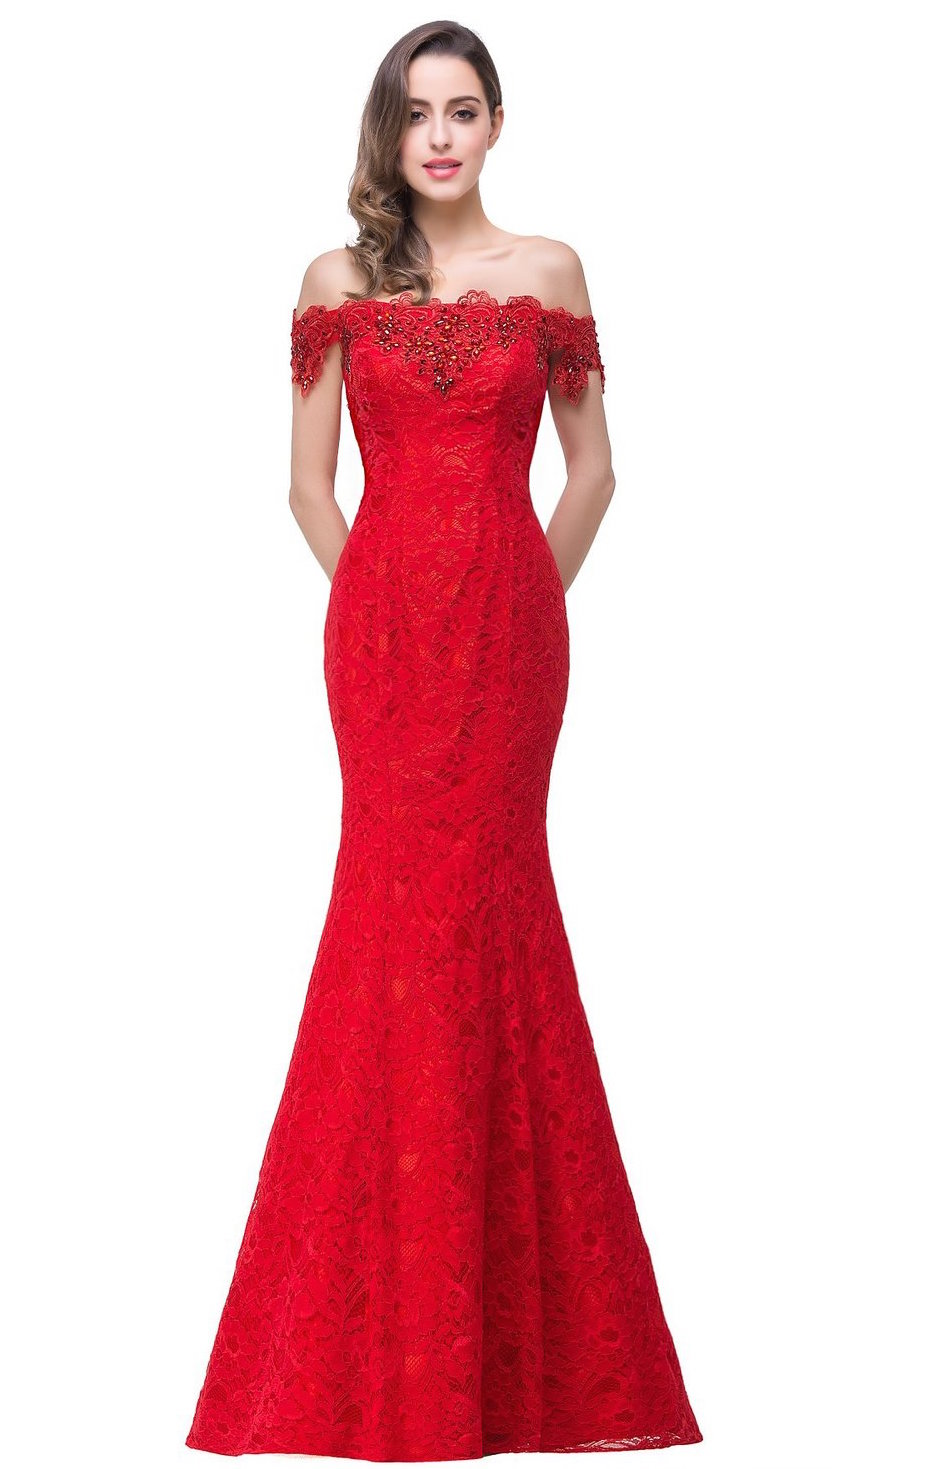 25 Red Wedding Dresses You Ll Absolutely Love 2020 Heavy Com